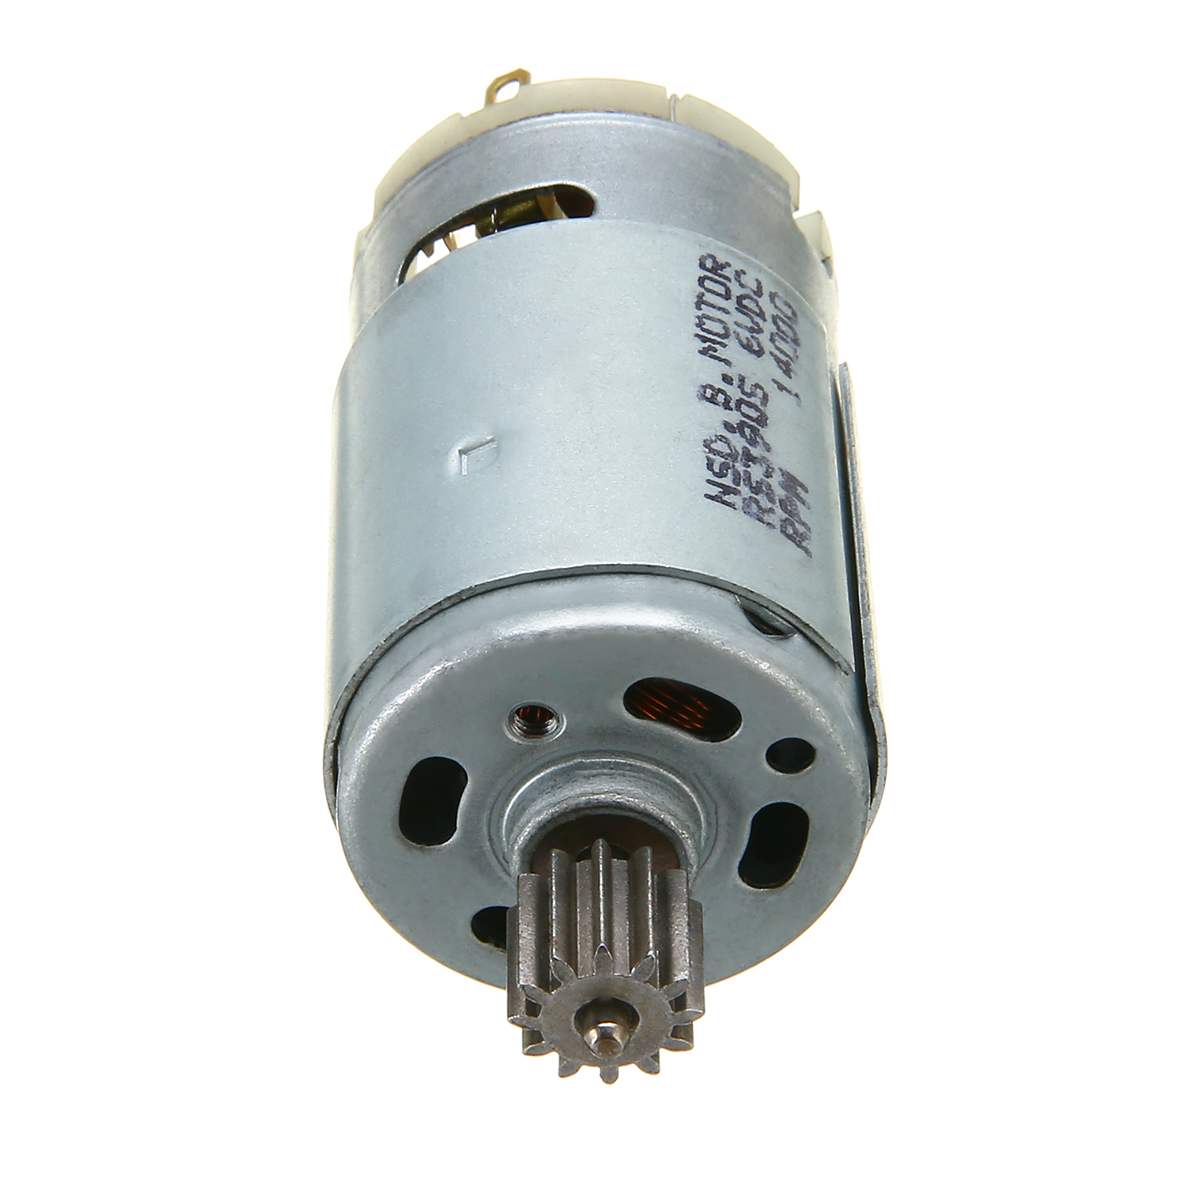 New RS390 Electric Motor 6V 14000RPM 25-35W For Kid Ride On Car Bike Toy Gear Box Motor 70*28mm